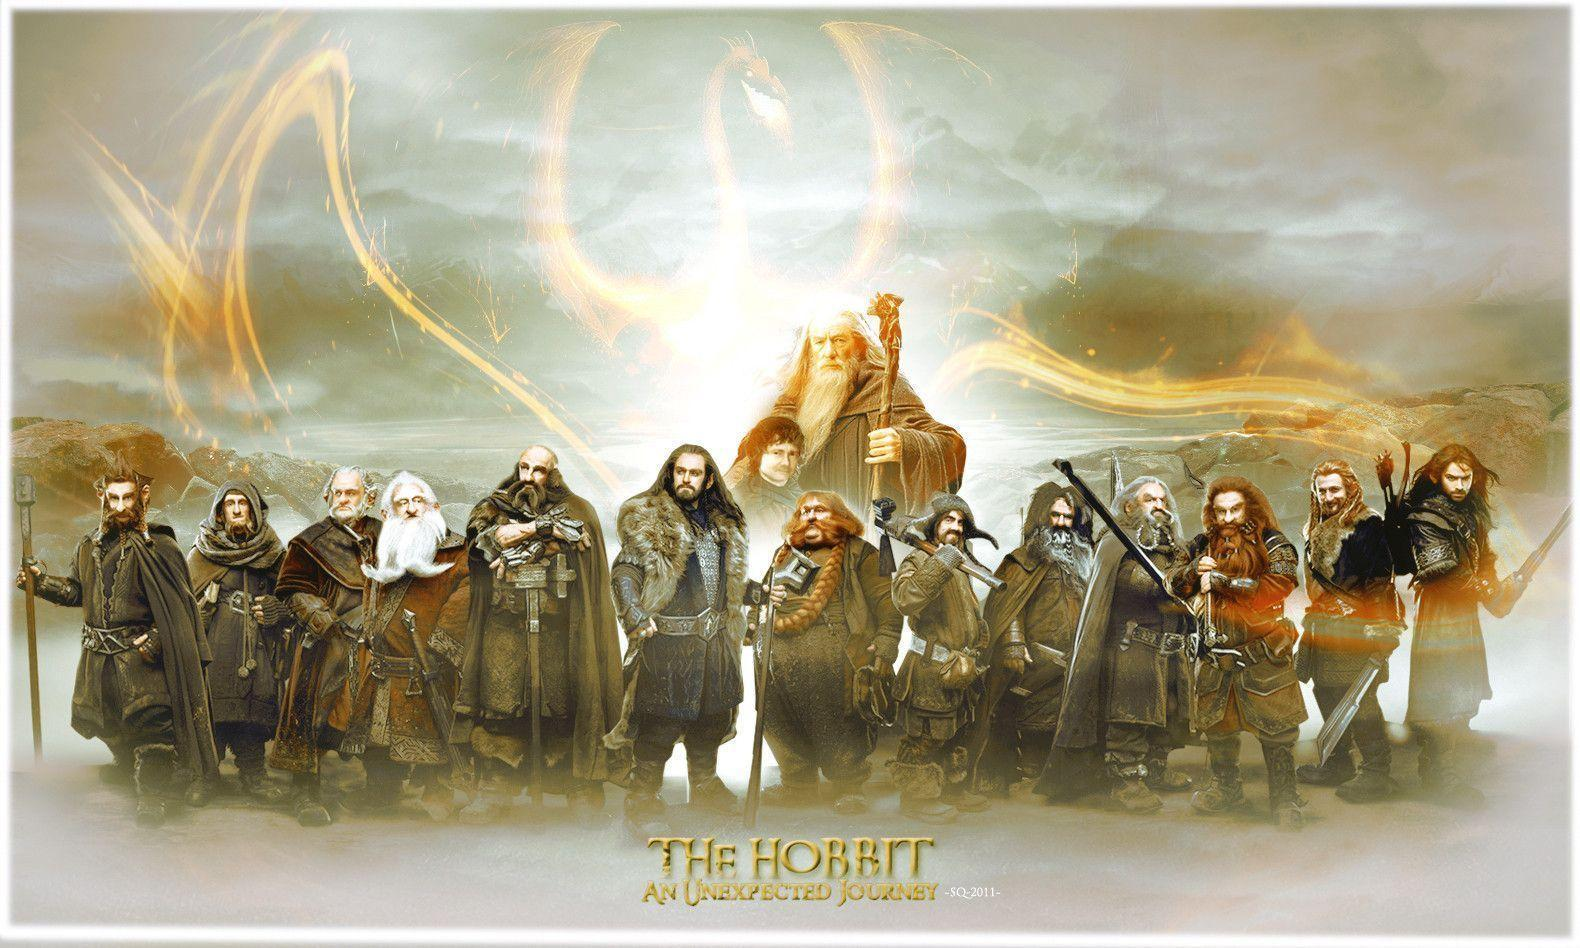 2012 The Hobbit An Unexpected Journey - Movie Wallpapers